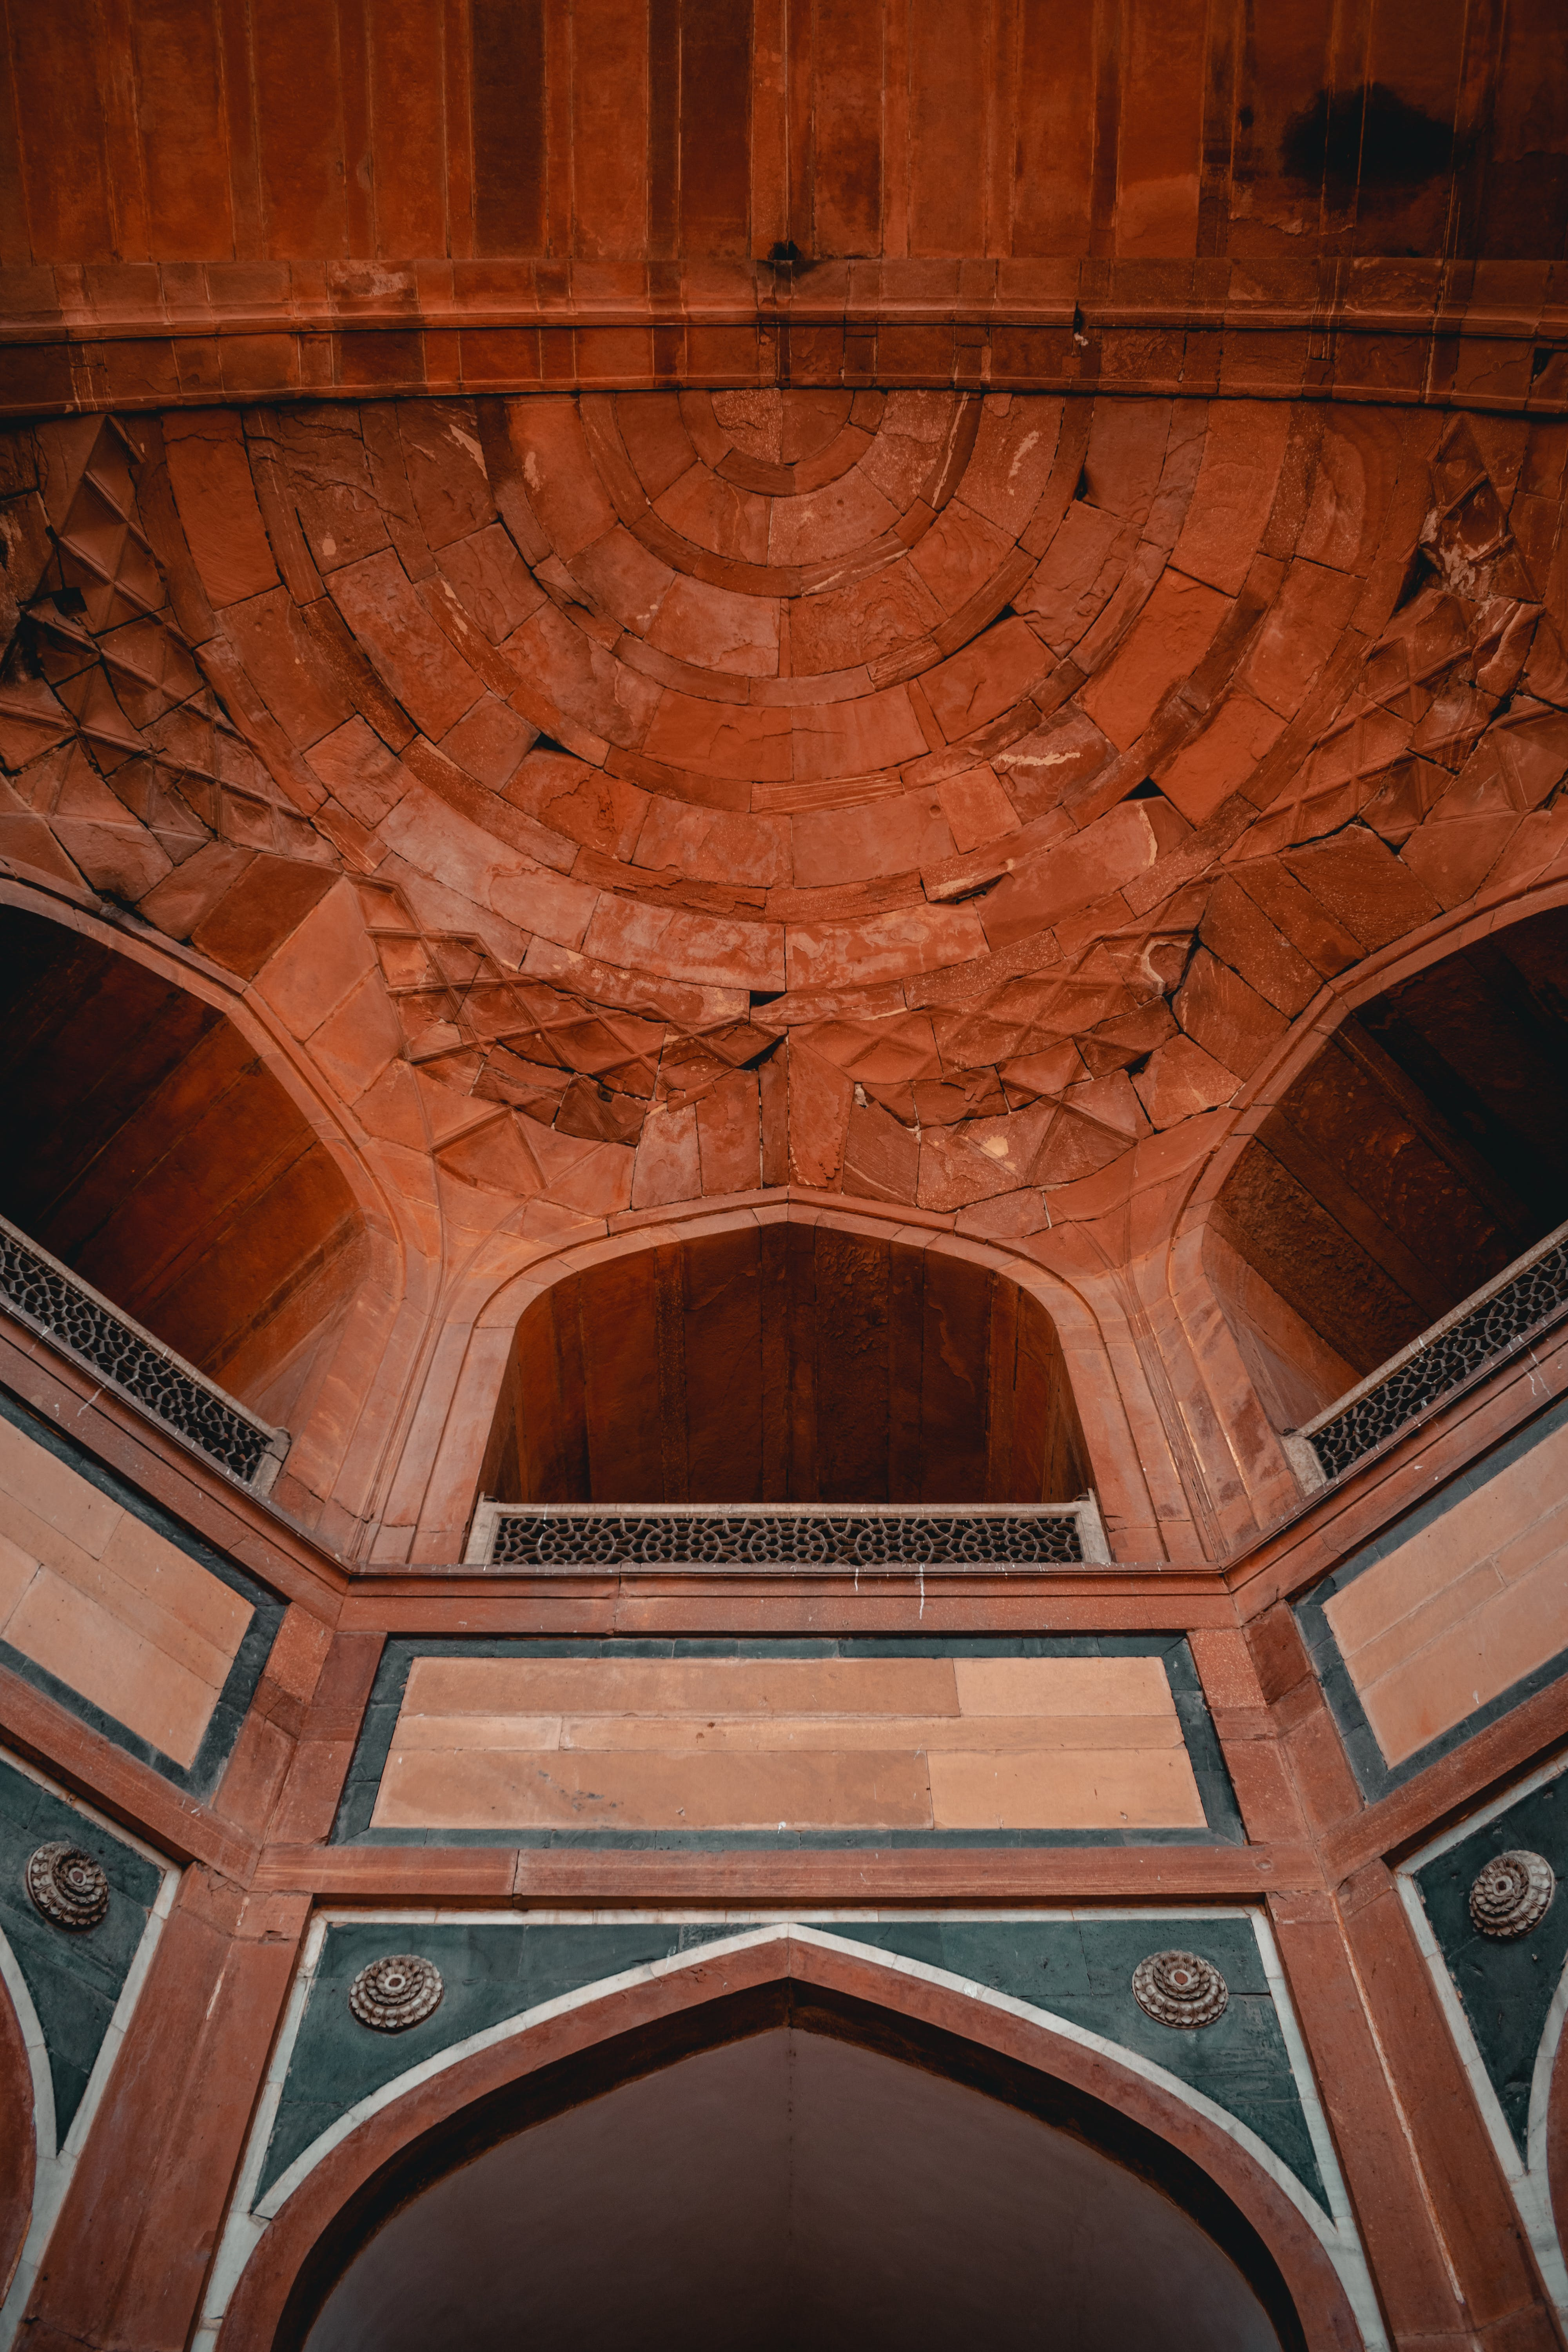 Low Angle Photography of Wooden Ceiling